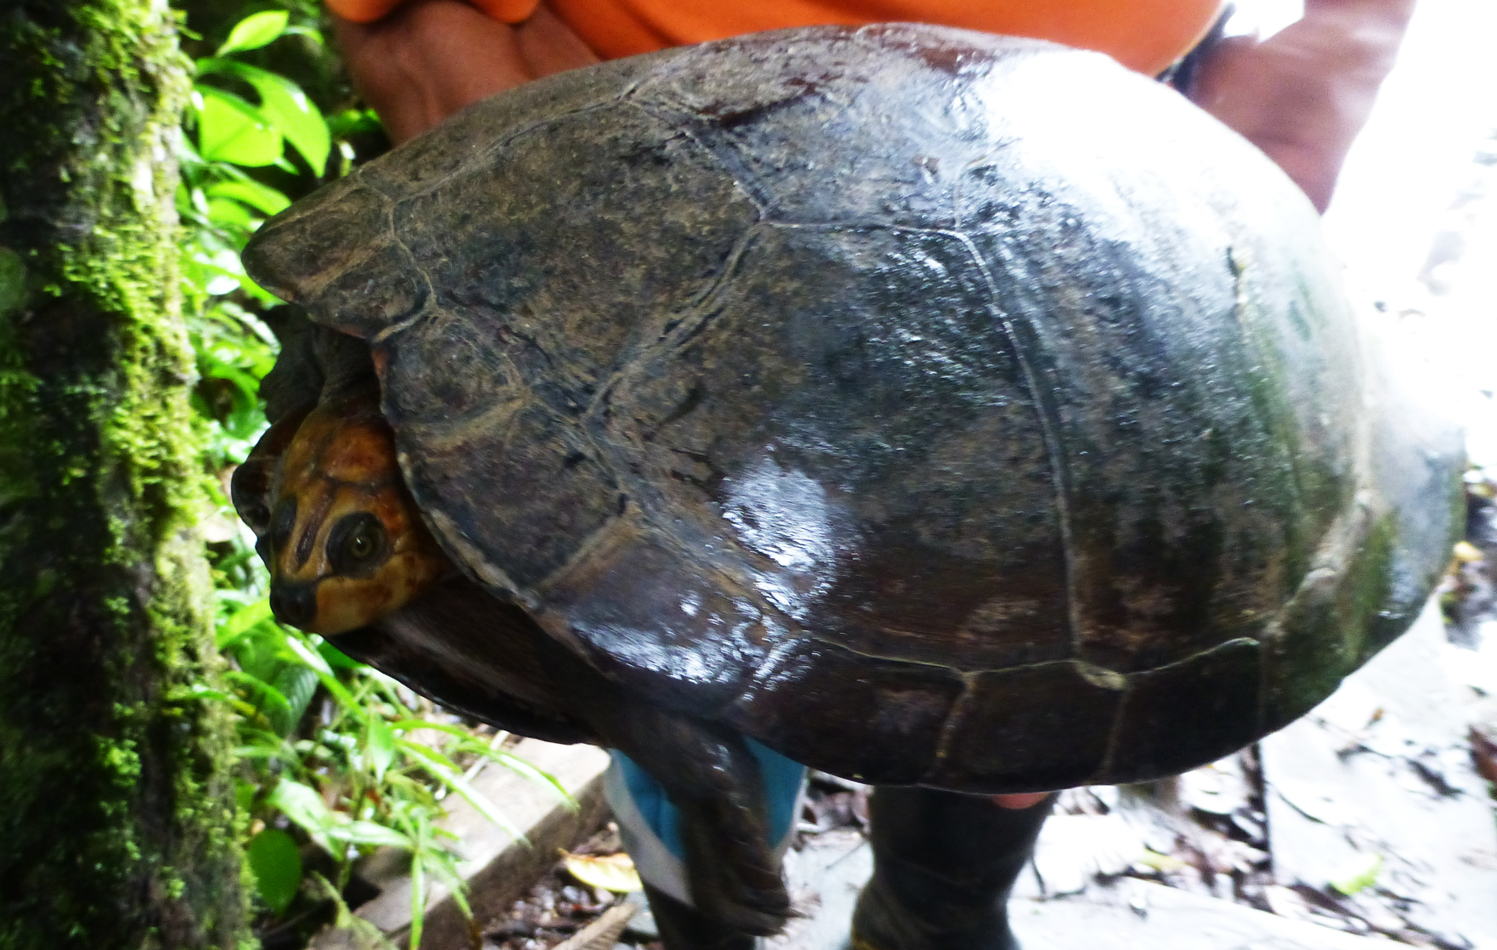 A rescued turtle